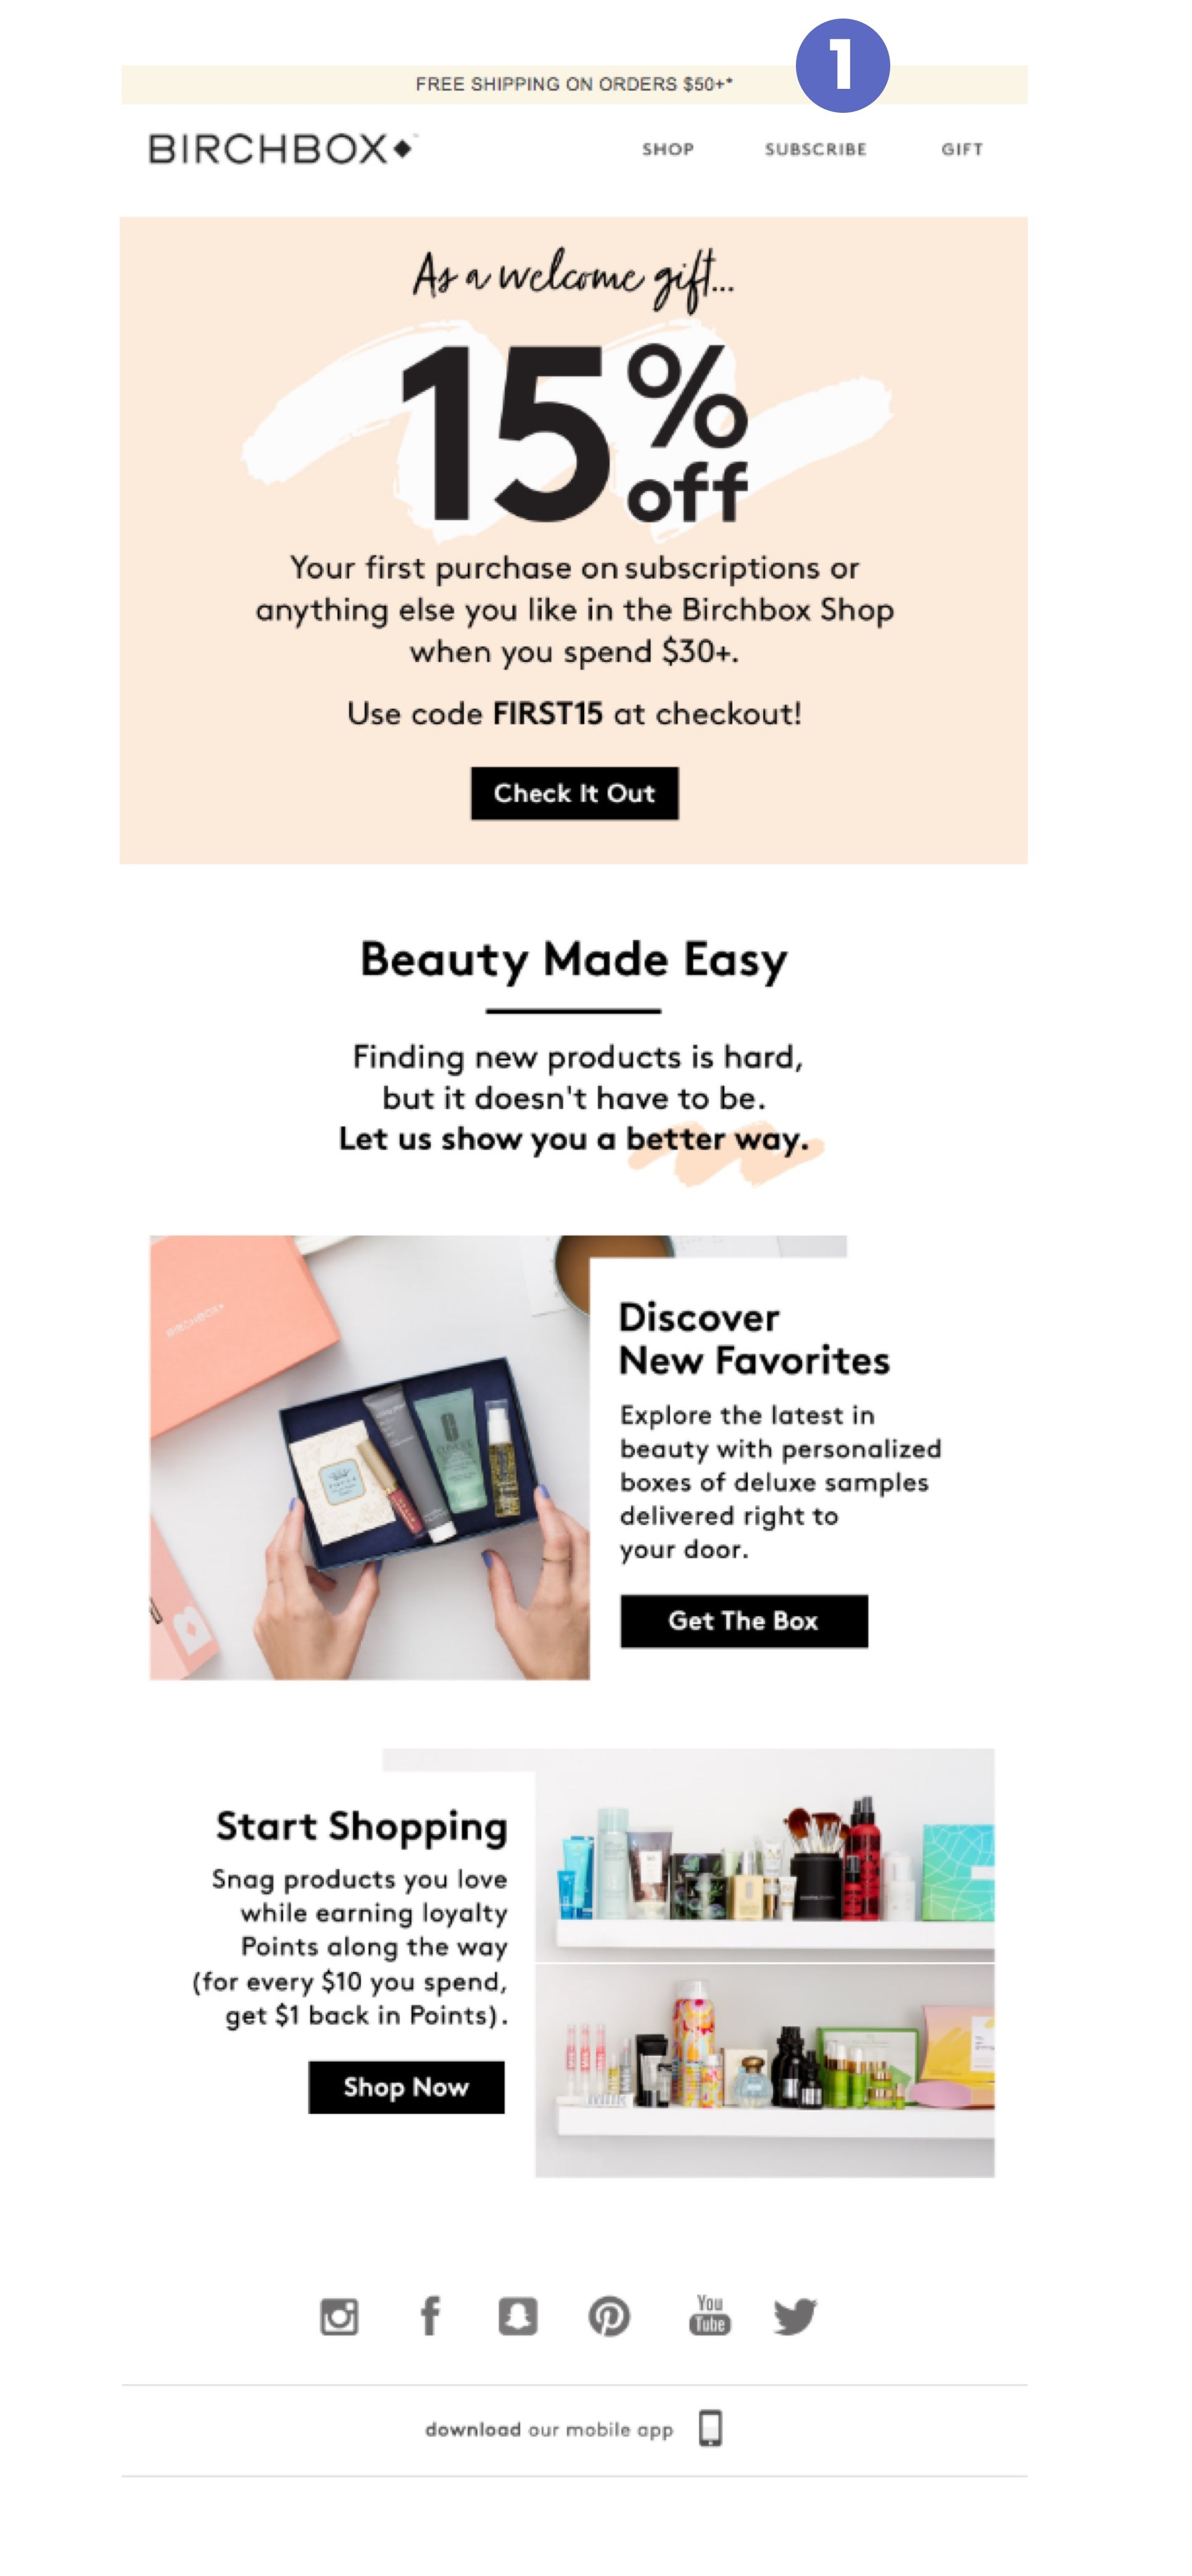 Email Marketing Lessons Learned from a High-Growth Ecommerce